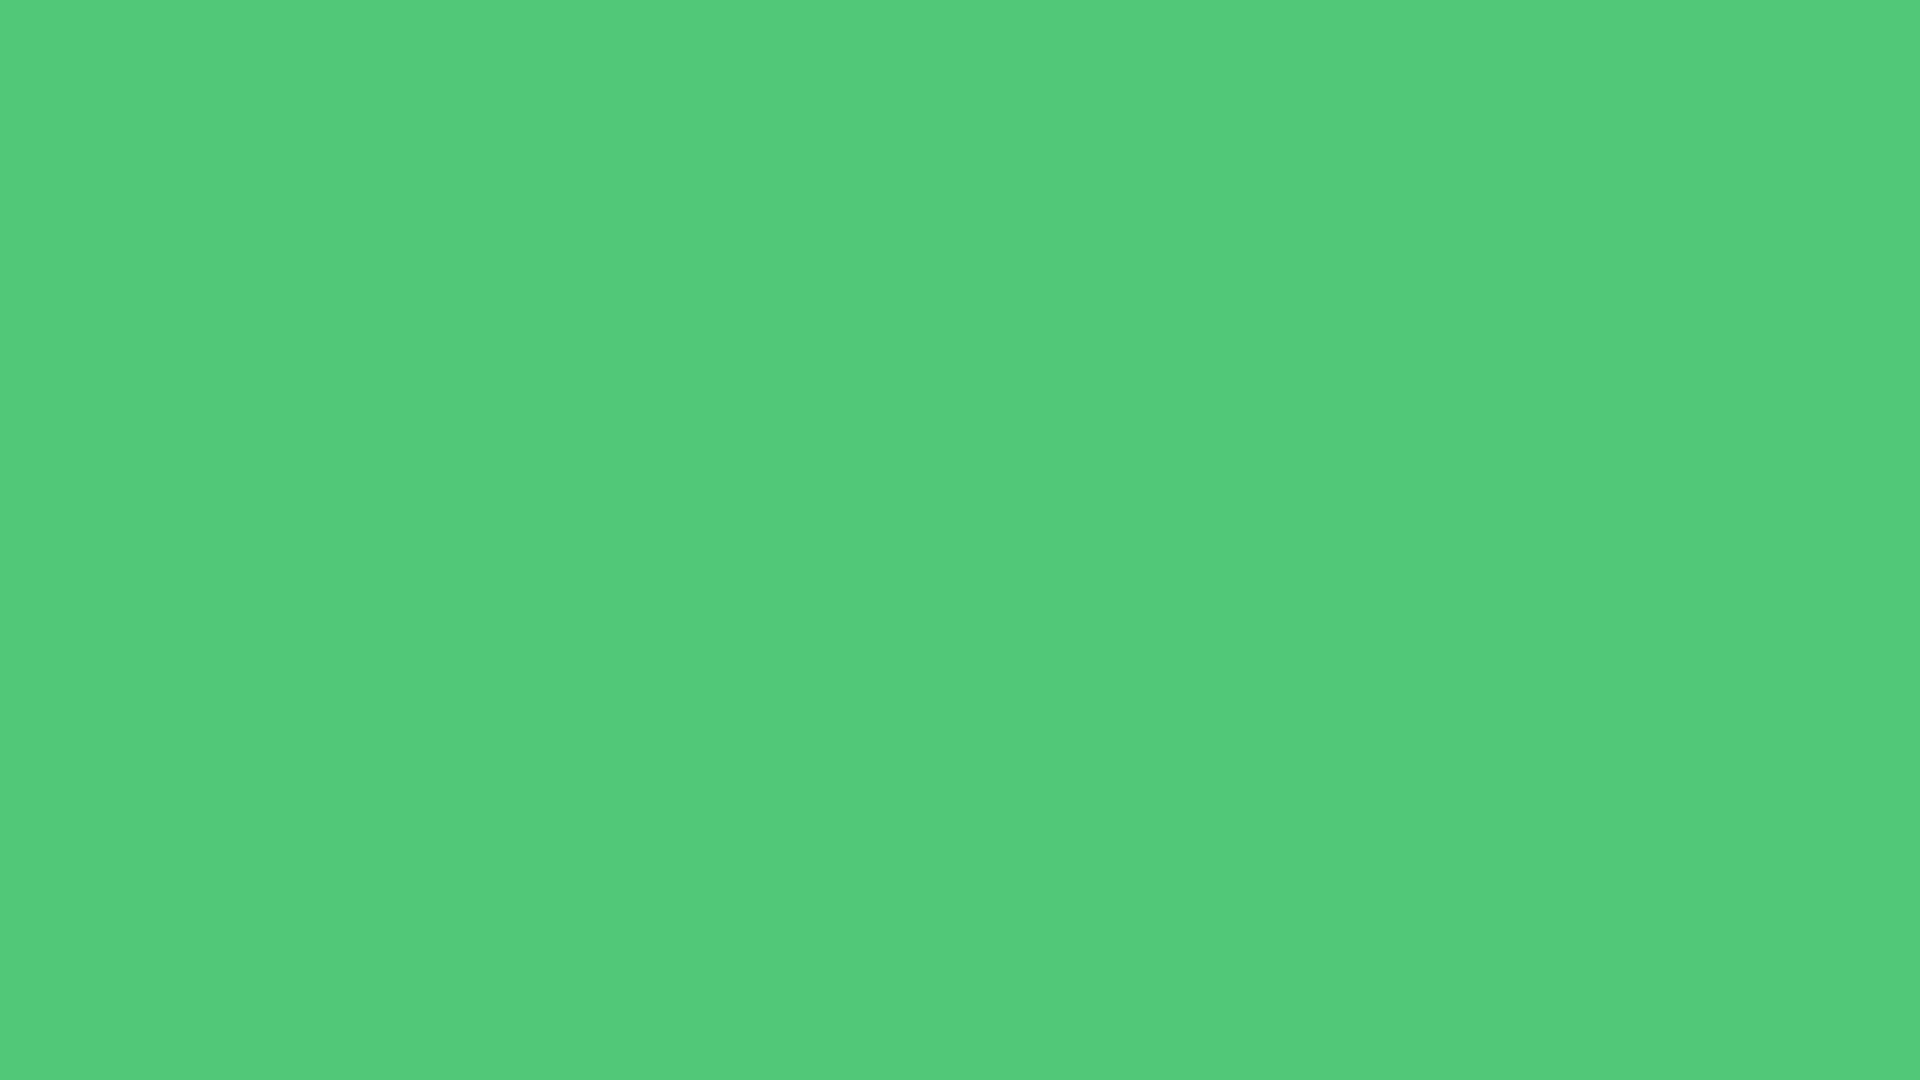 1920x1080 Emerald Solid Color Background 1920x1080